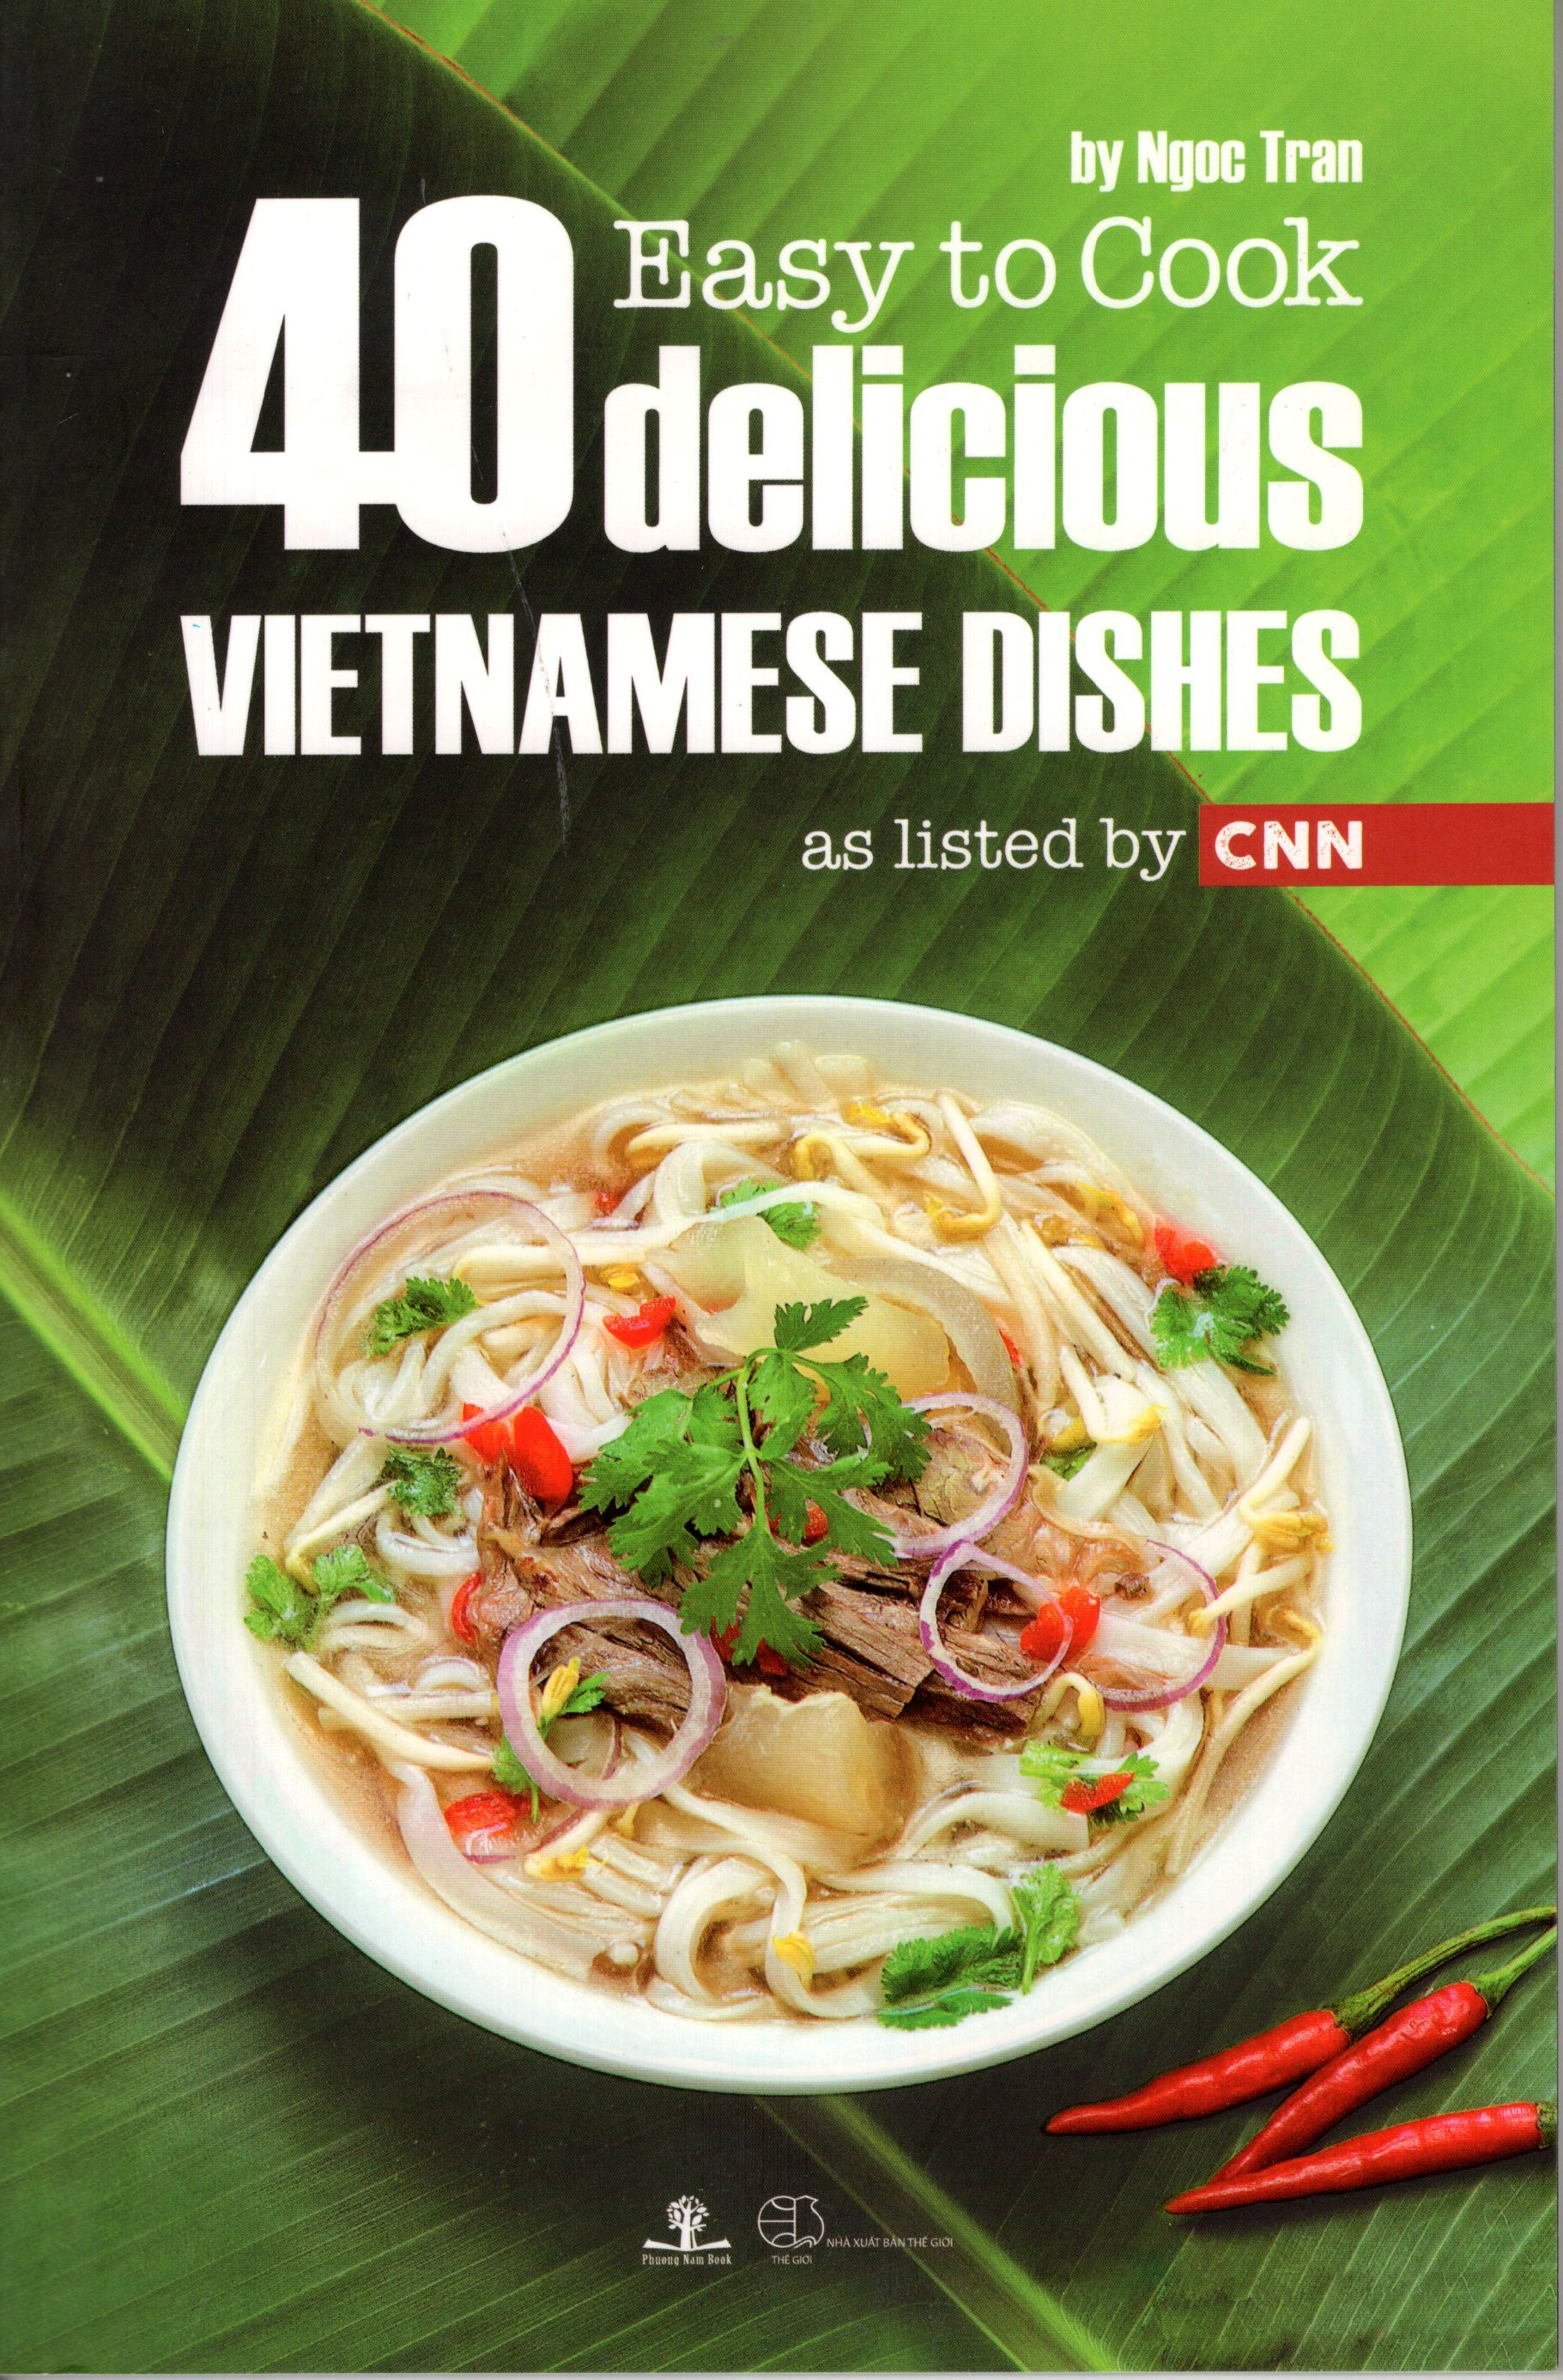 Easy To Cook – 40 Delicious Vietnamese Dishes